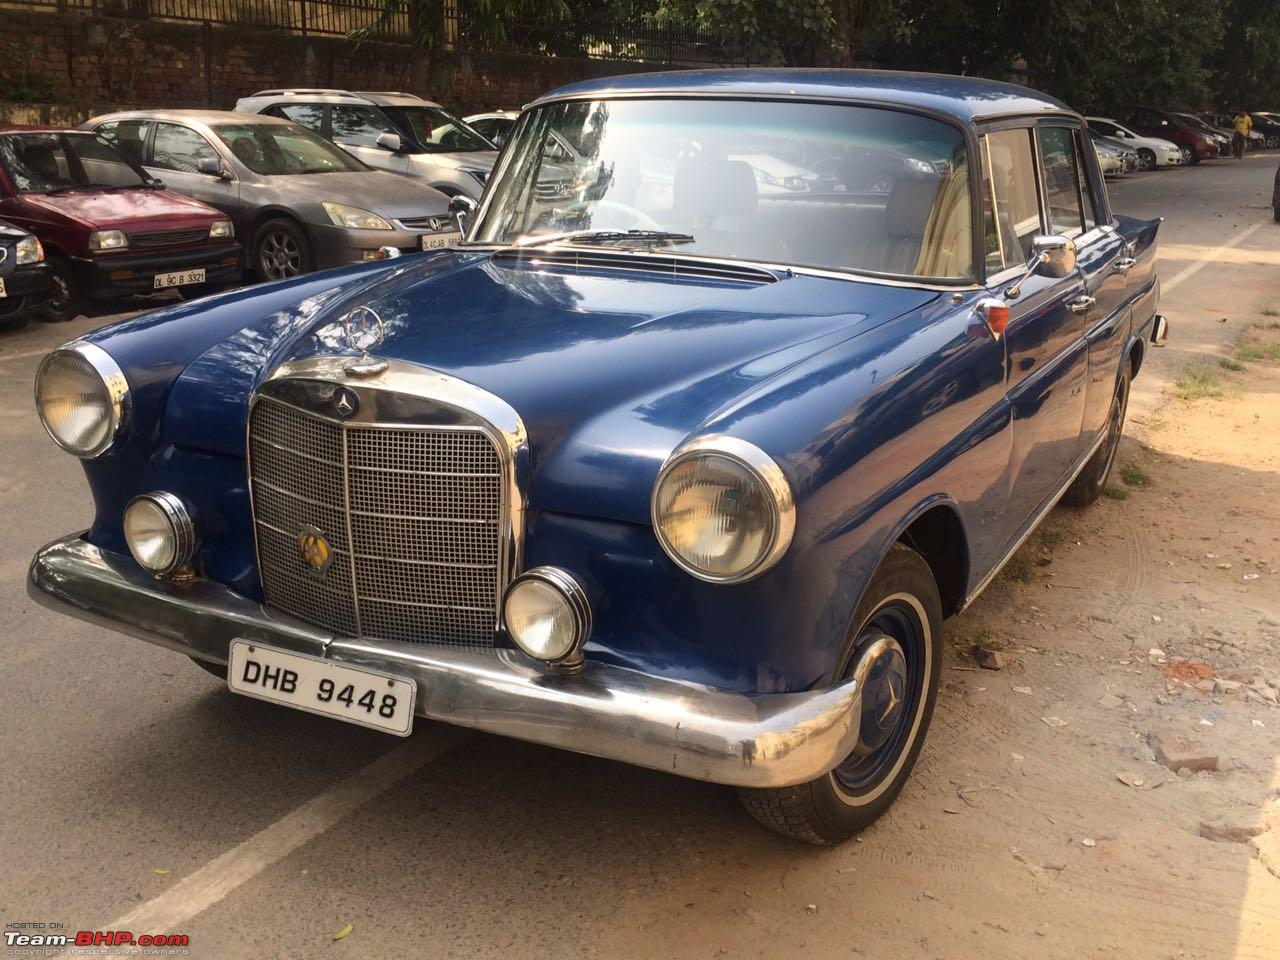 Vintage classic mercedes benz cars in india page 132 for All models of mercedes benz cars in india